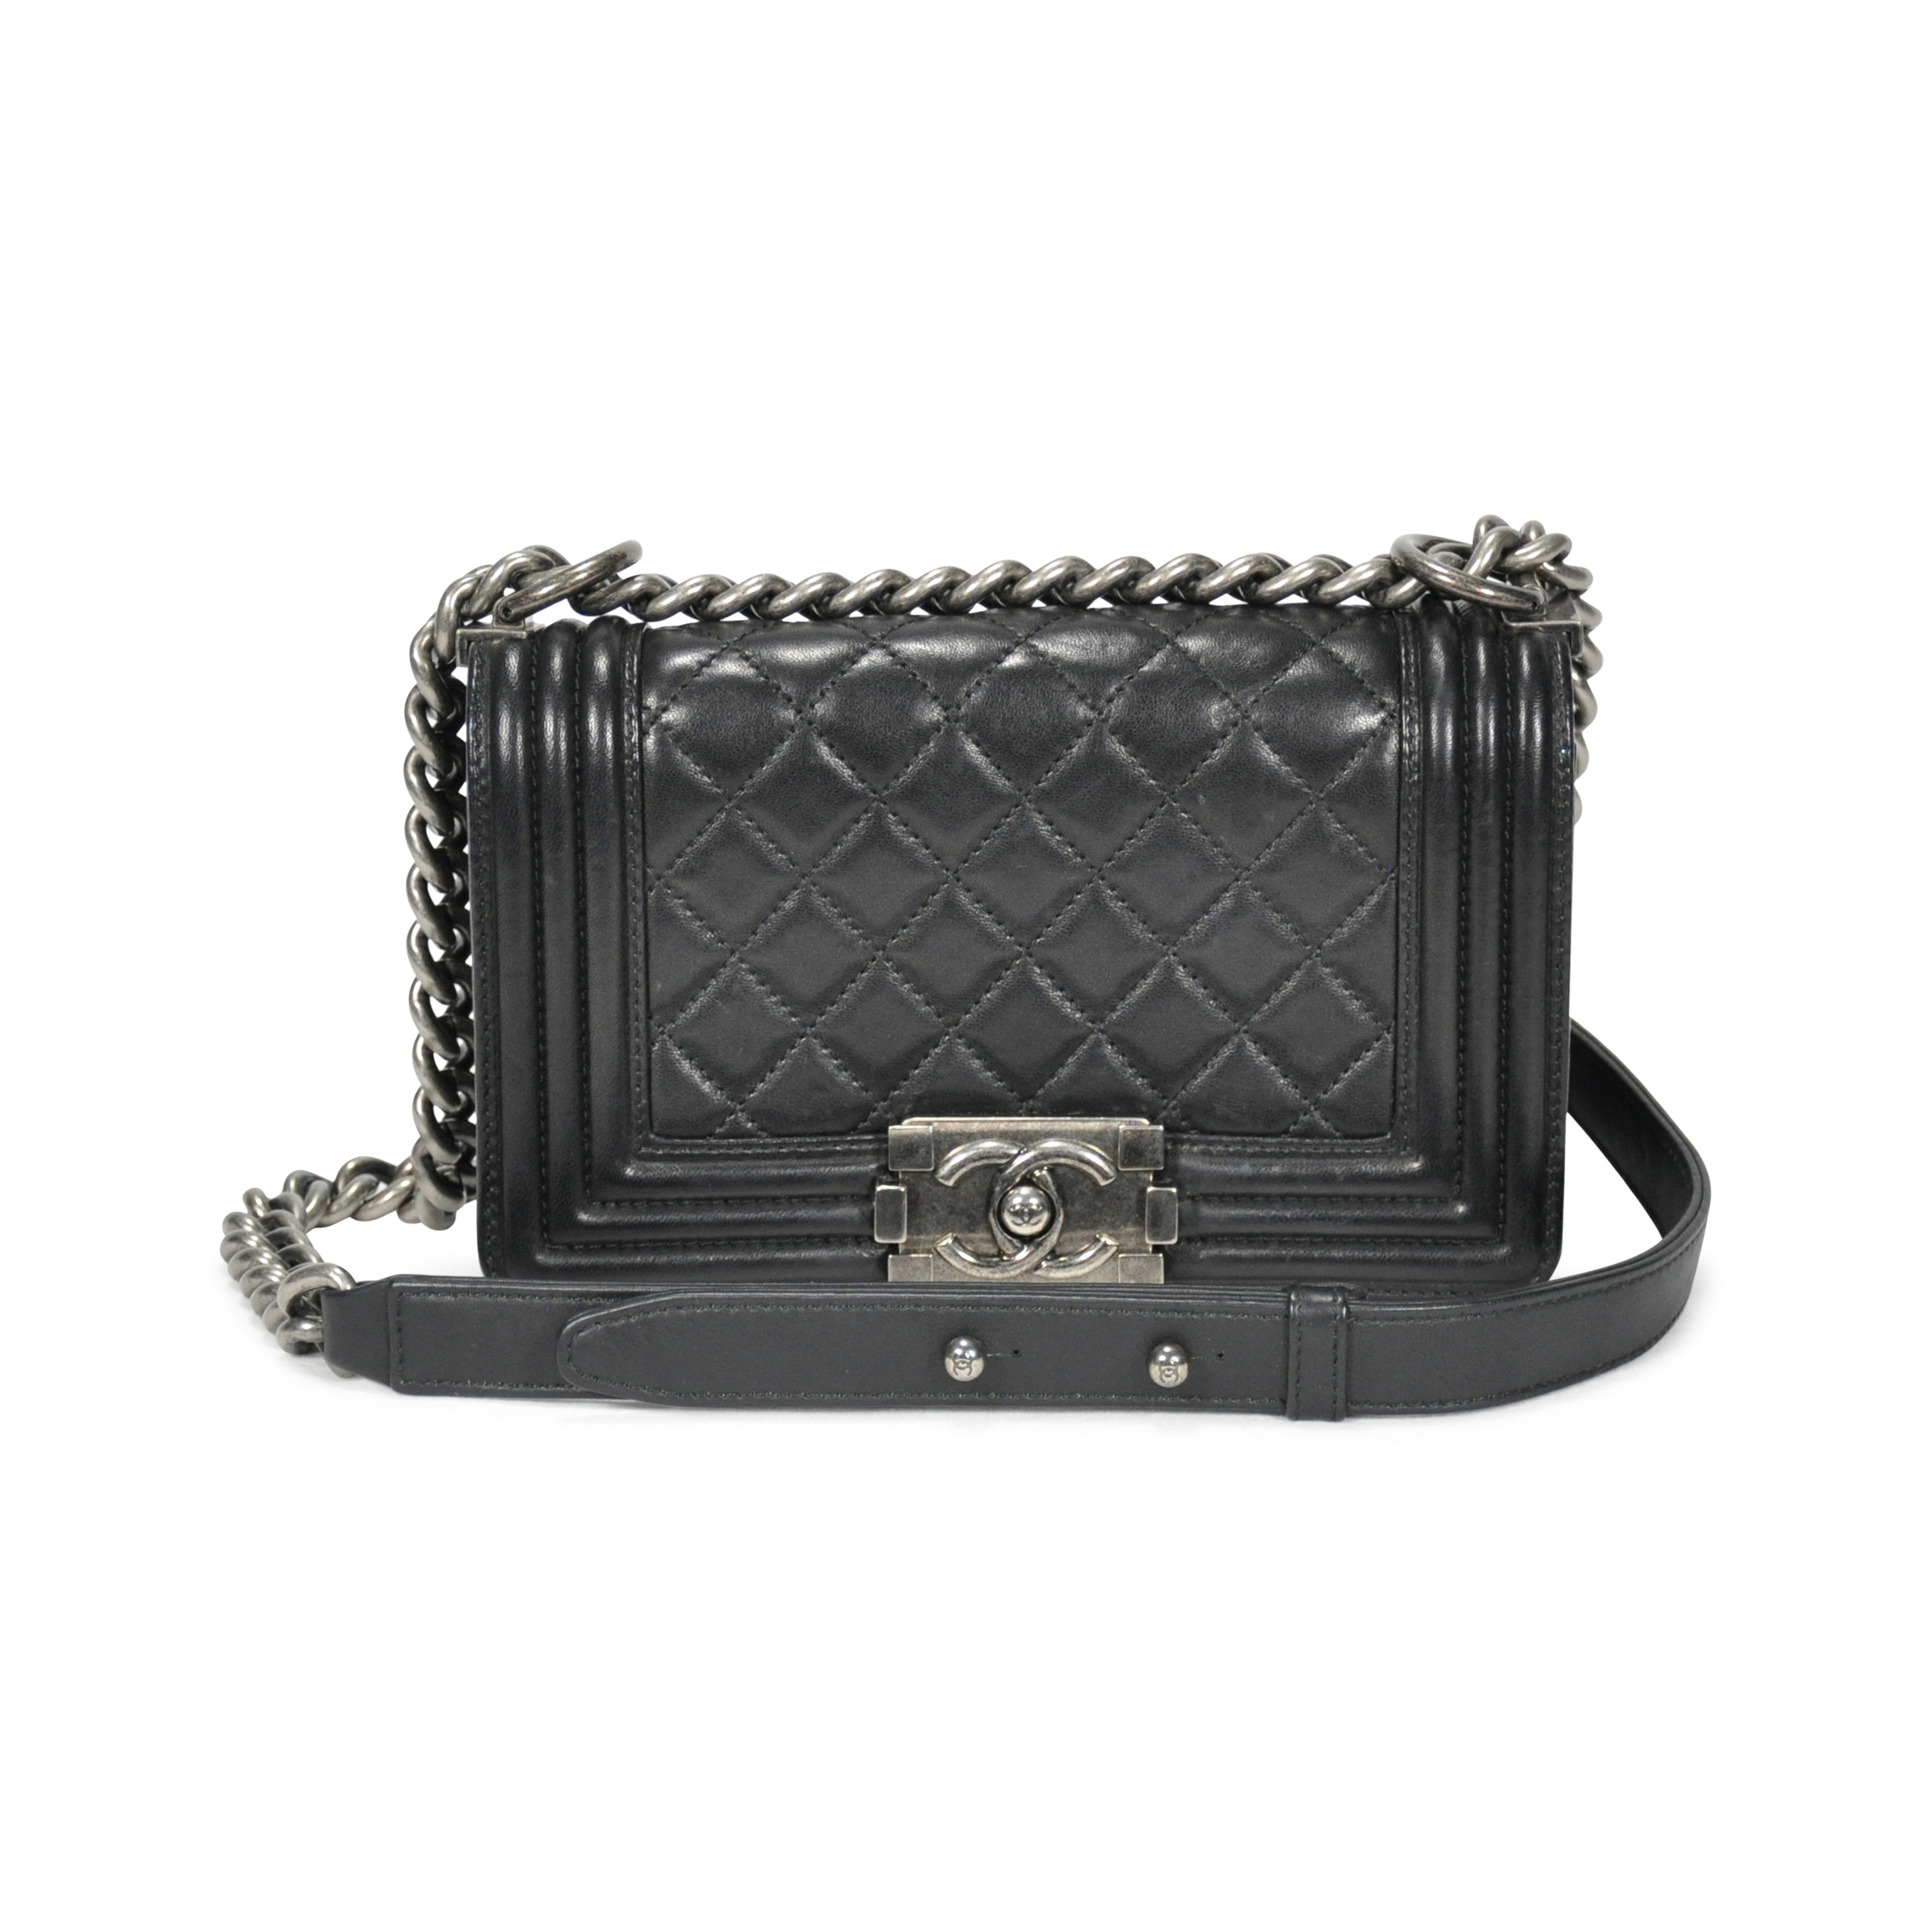 6490e0b33da3 Authentic Second Hand Chanel Small Boy Bag (PSS-249-00005) | THE FIFTH  COLLECTION